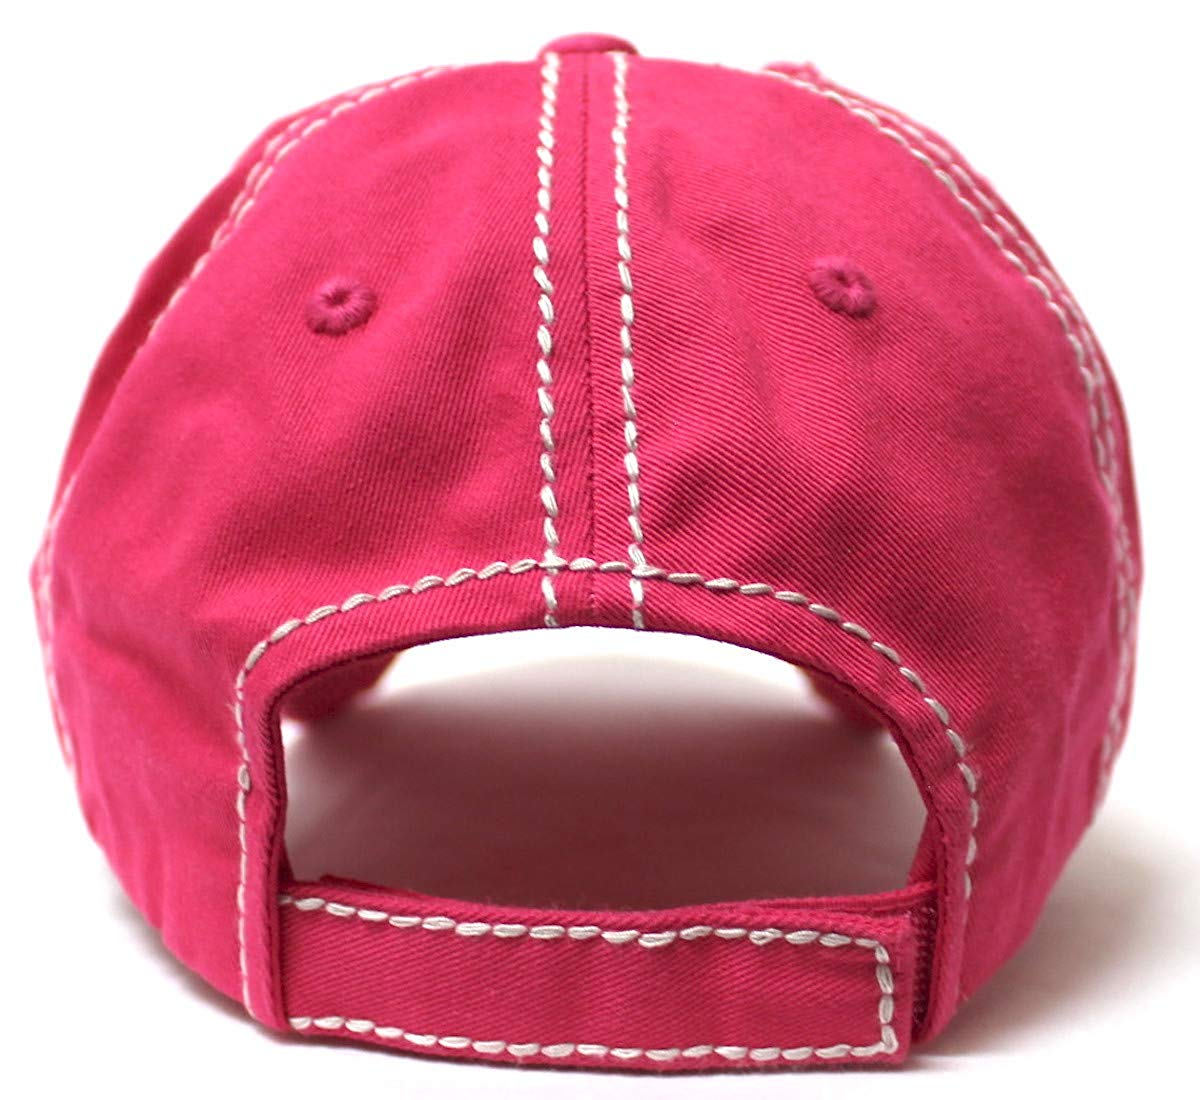 Country Humor Cap This Heifer Don't TAKE NO Bull Red Western Bandana Cow Patch Baseball Hat, Girl Pink - Caps 'N Vintage